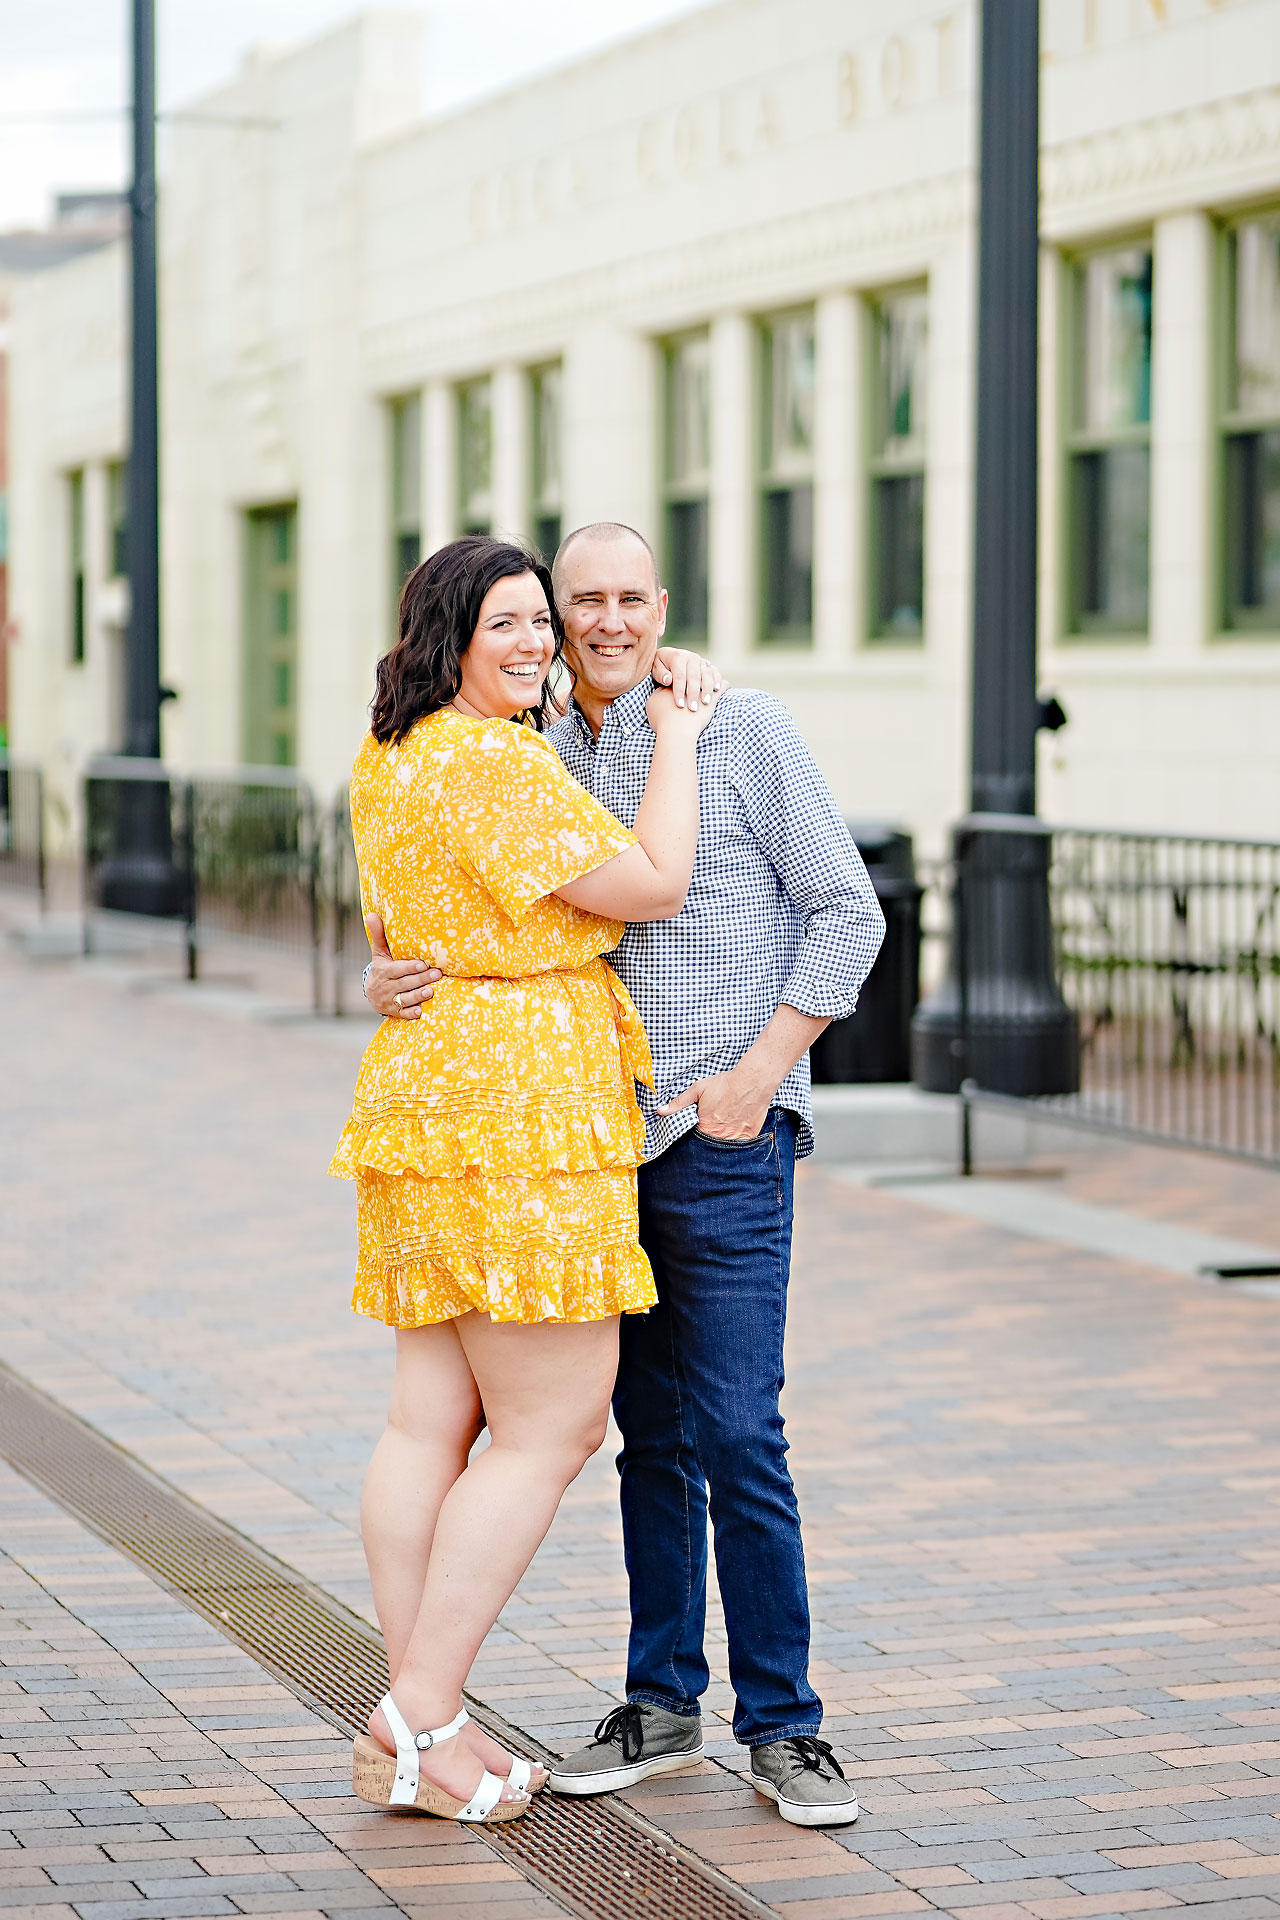 Katie Chuck Bottleworks Canal Indianapolis Engagement Session 038